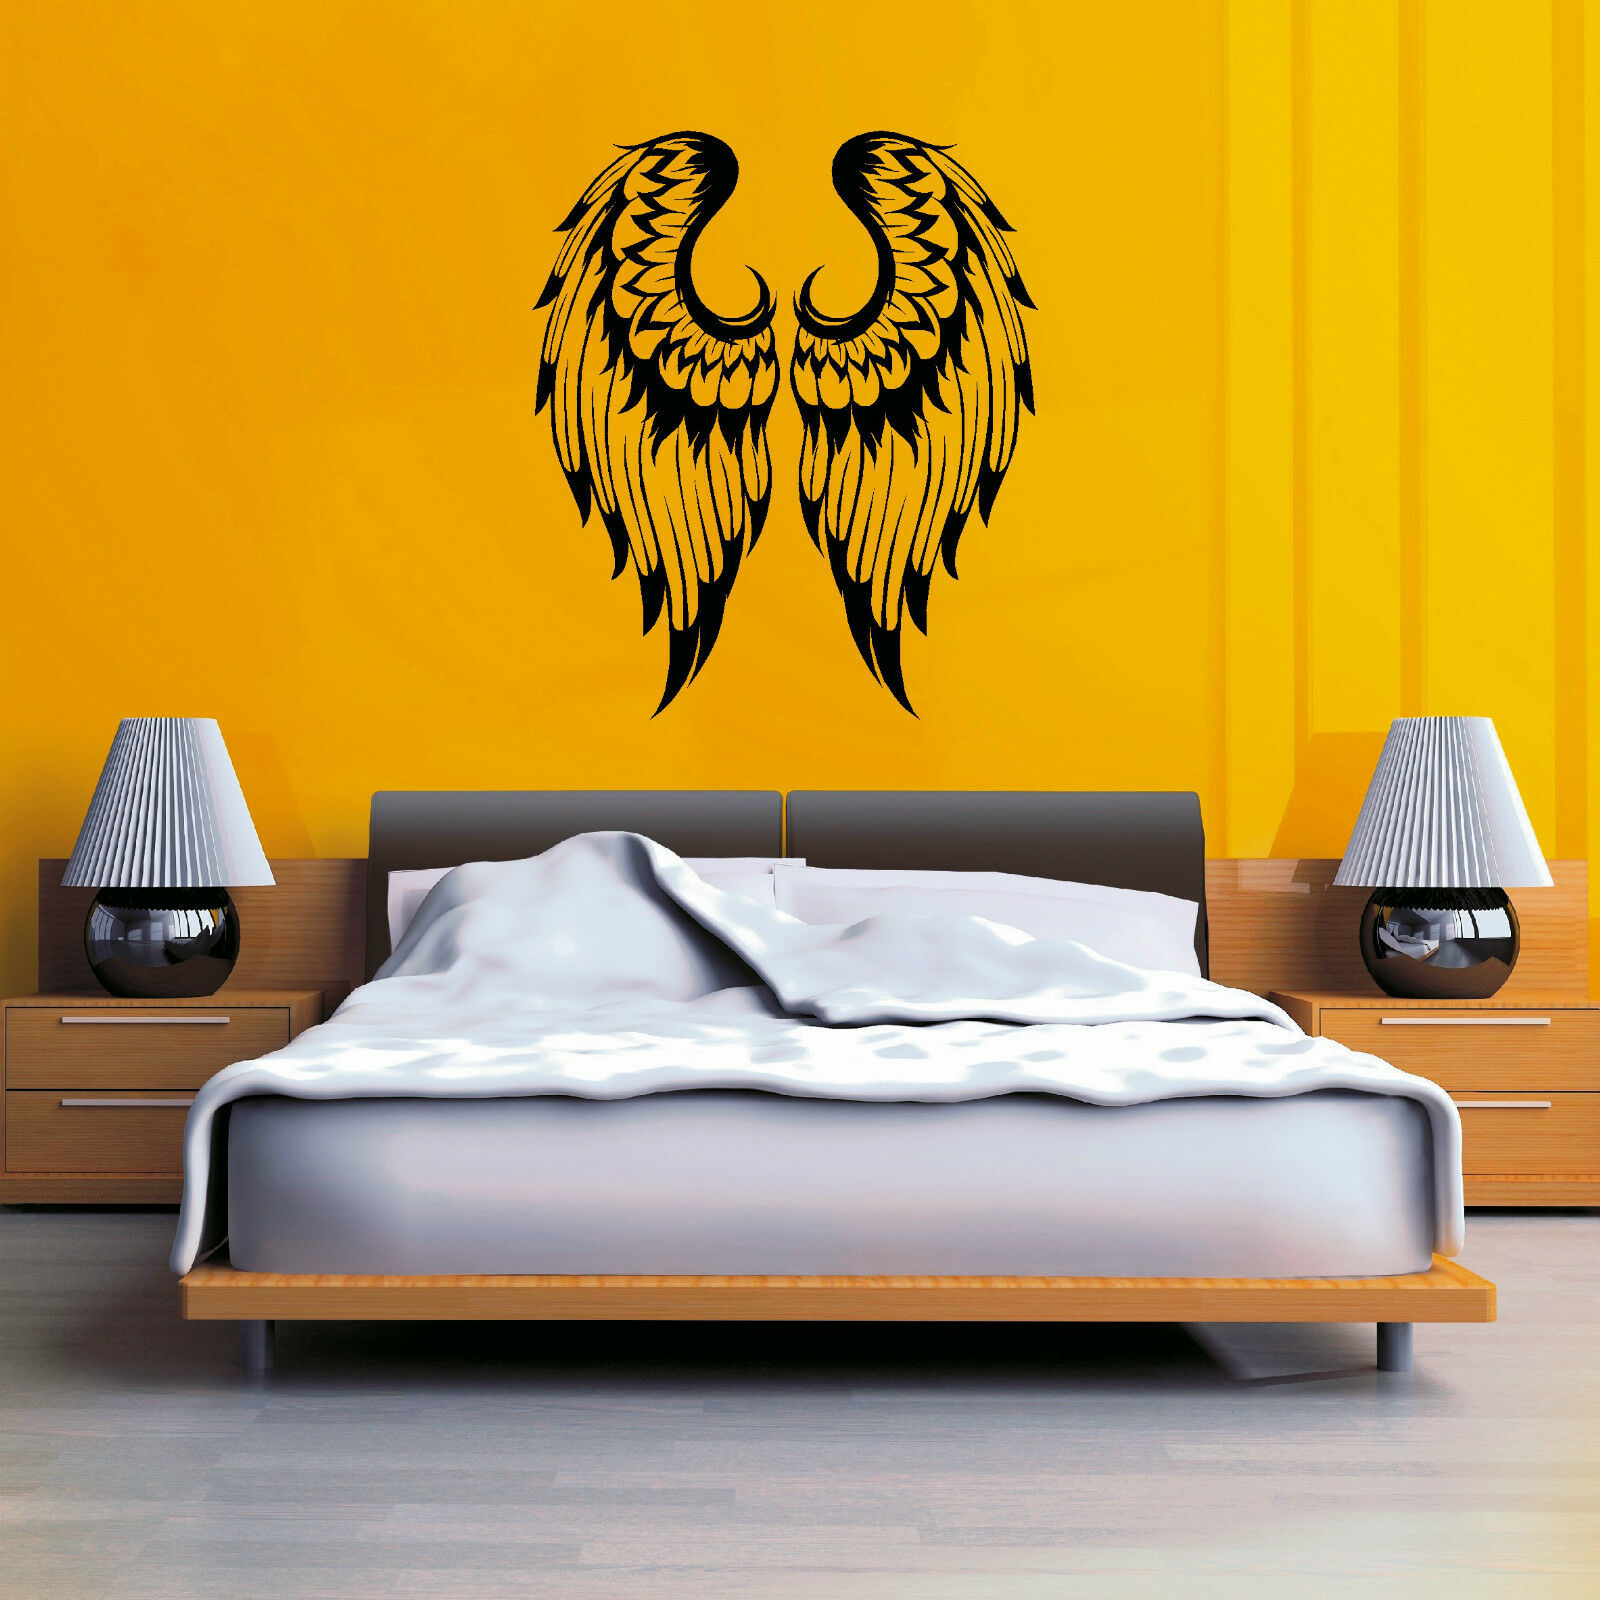 ANGEL WINGS PAIR GOTHIC vinyl wall art sticker decal - $7.76   PicClick